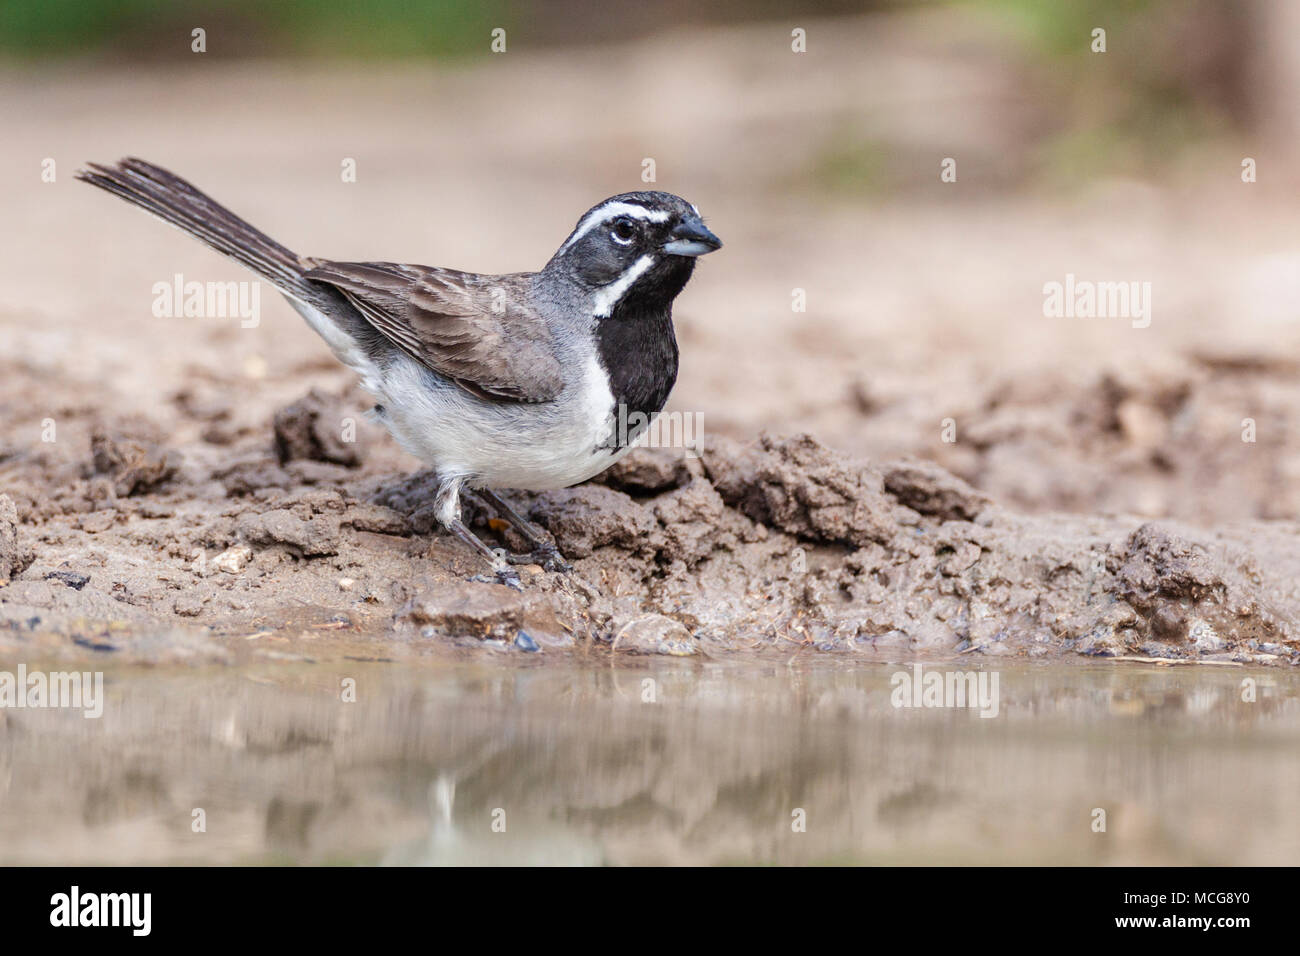 Black-throated Sparrow, Amphispiza bilineata, looking for water and relief from summer heat, on a ranch in South Texas. - Stock Image